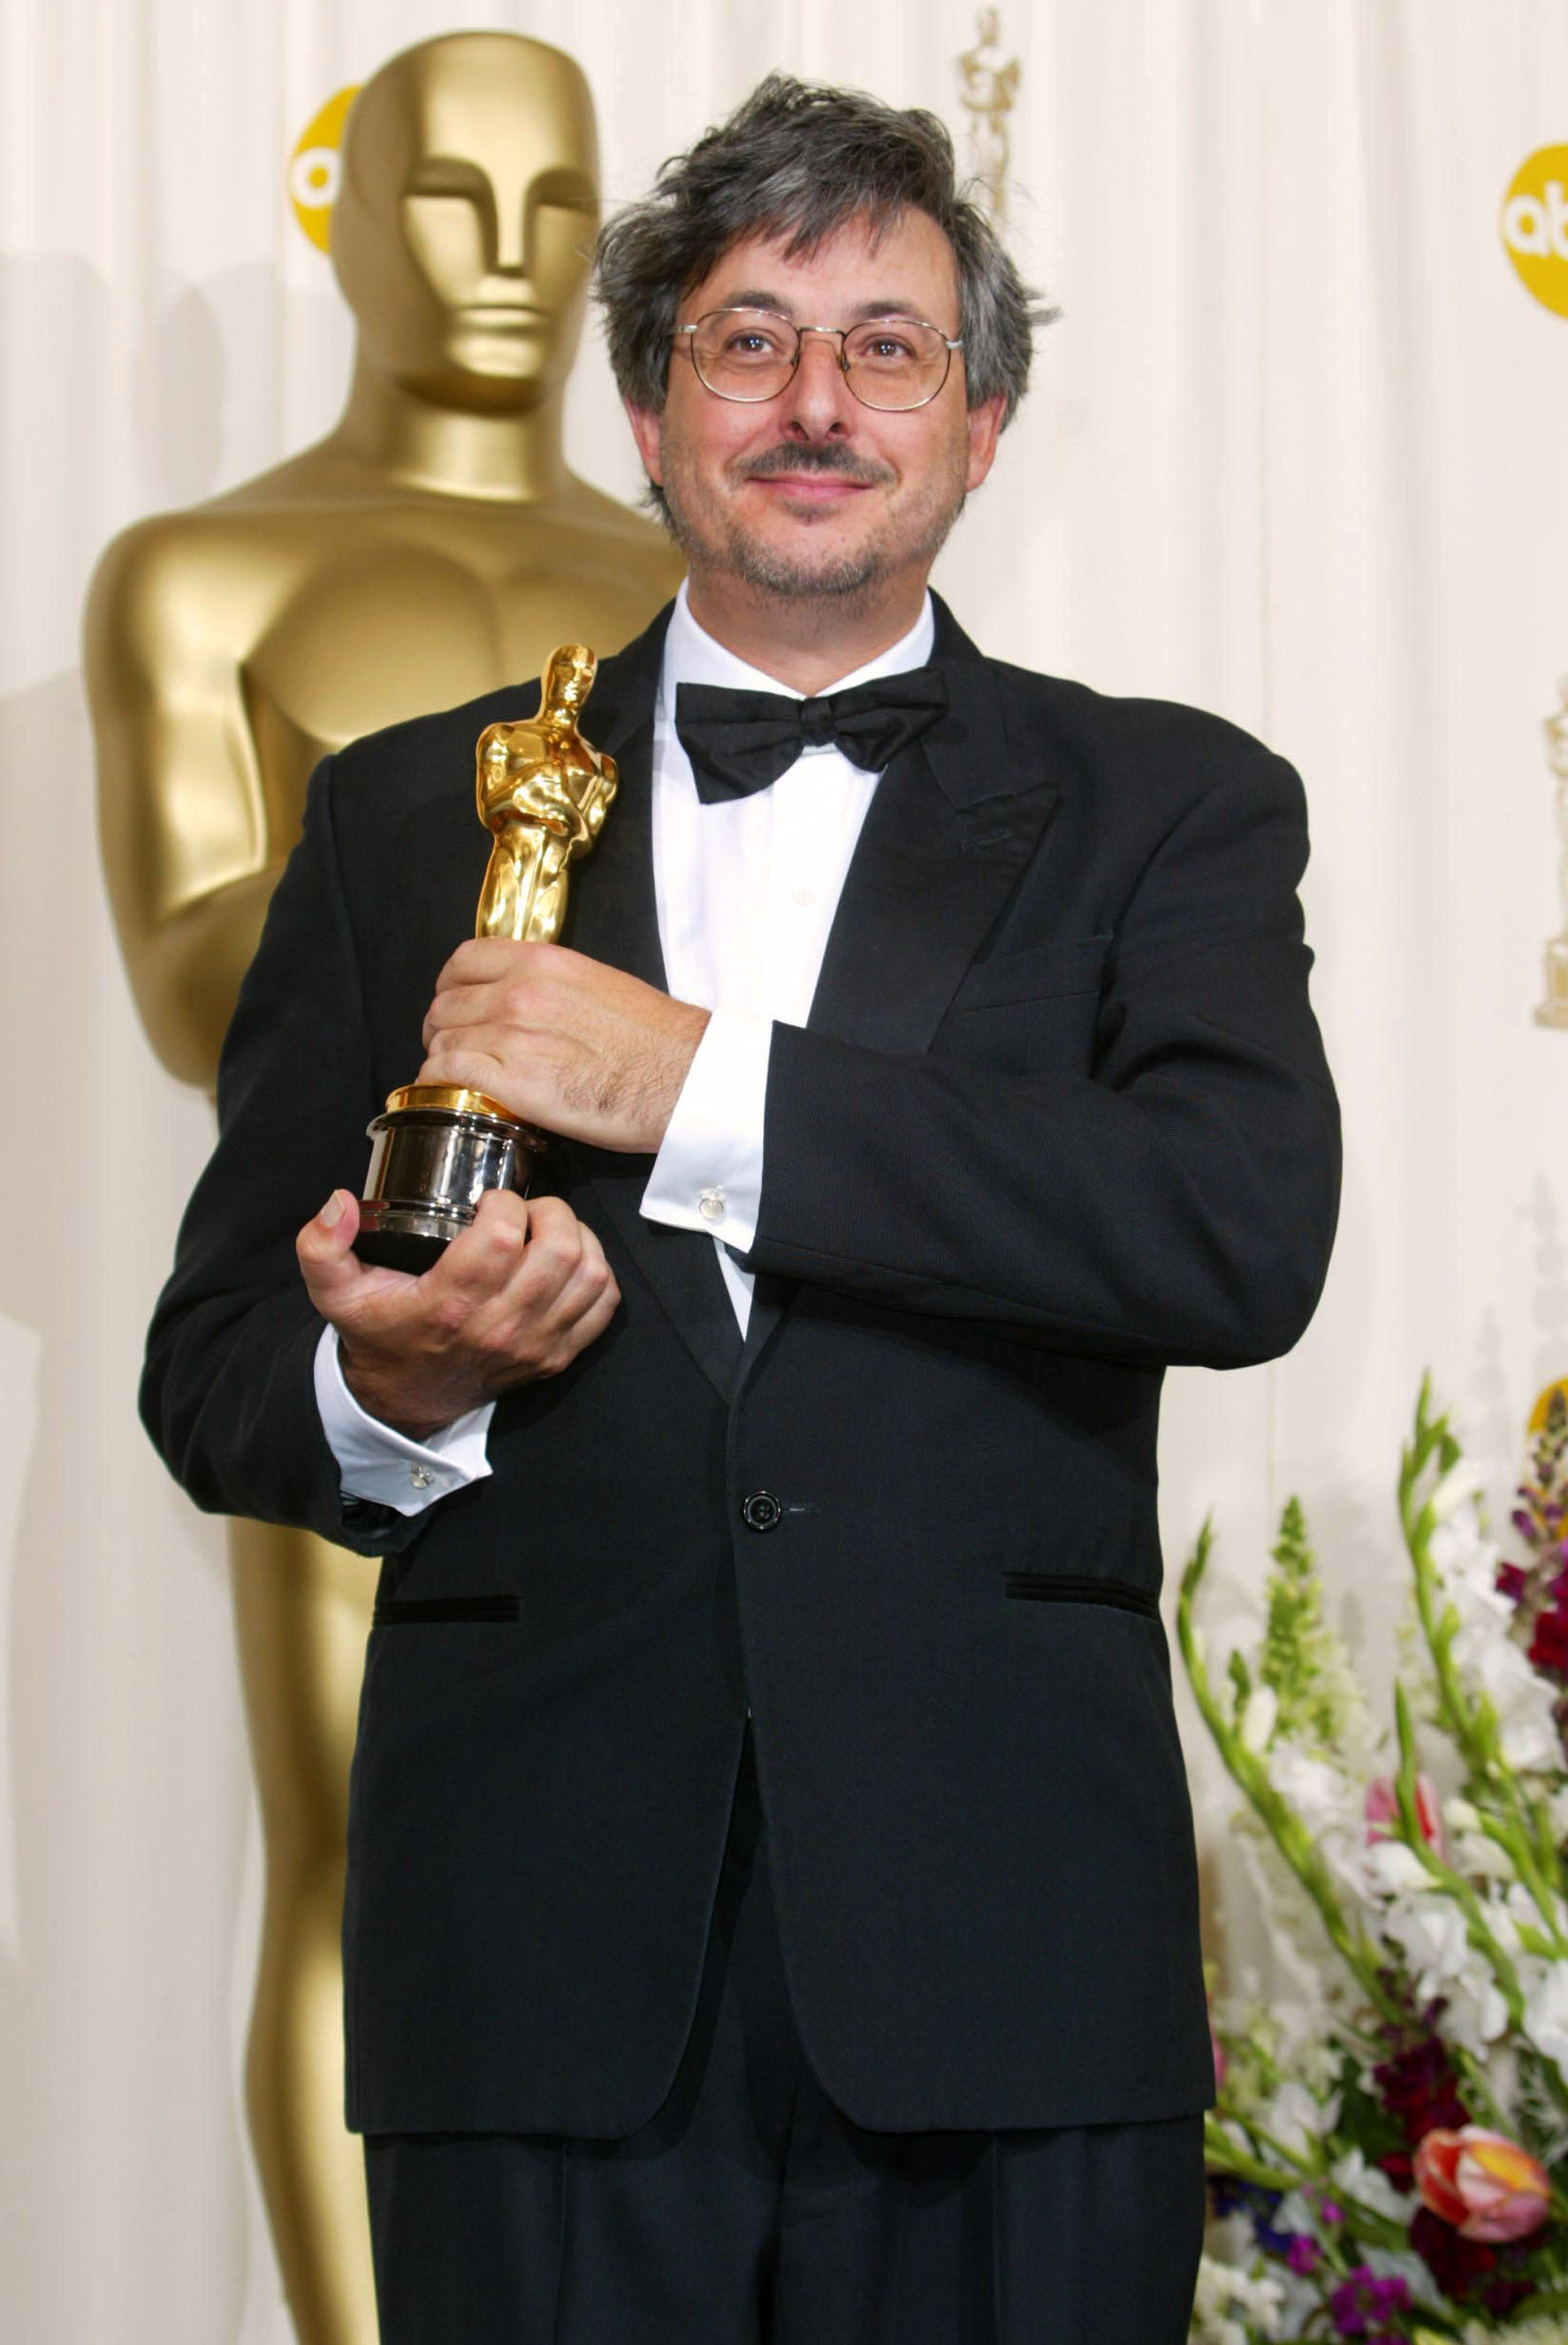 Lord Of The Rings' Oscar-winning cinematographer Andrew Lesnie has died aged 59